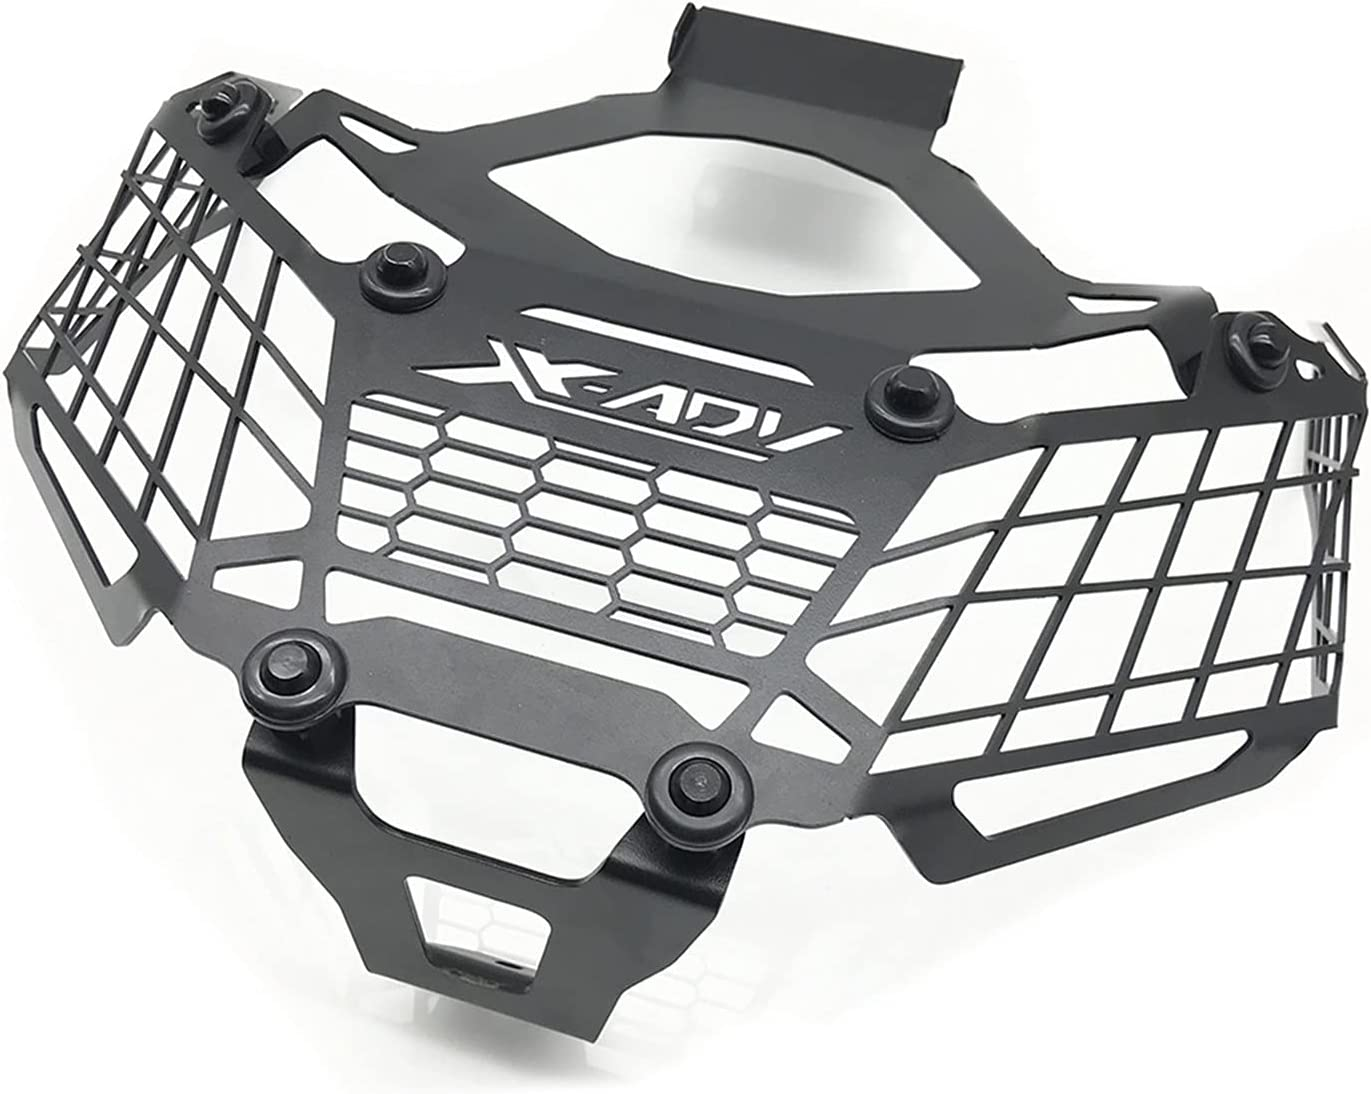 supreme Motorcycle Headlight Grille for X-ADV XADV 2018 750 Mo Jacksonville Mall 2019 2017